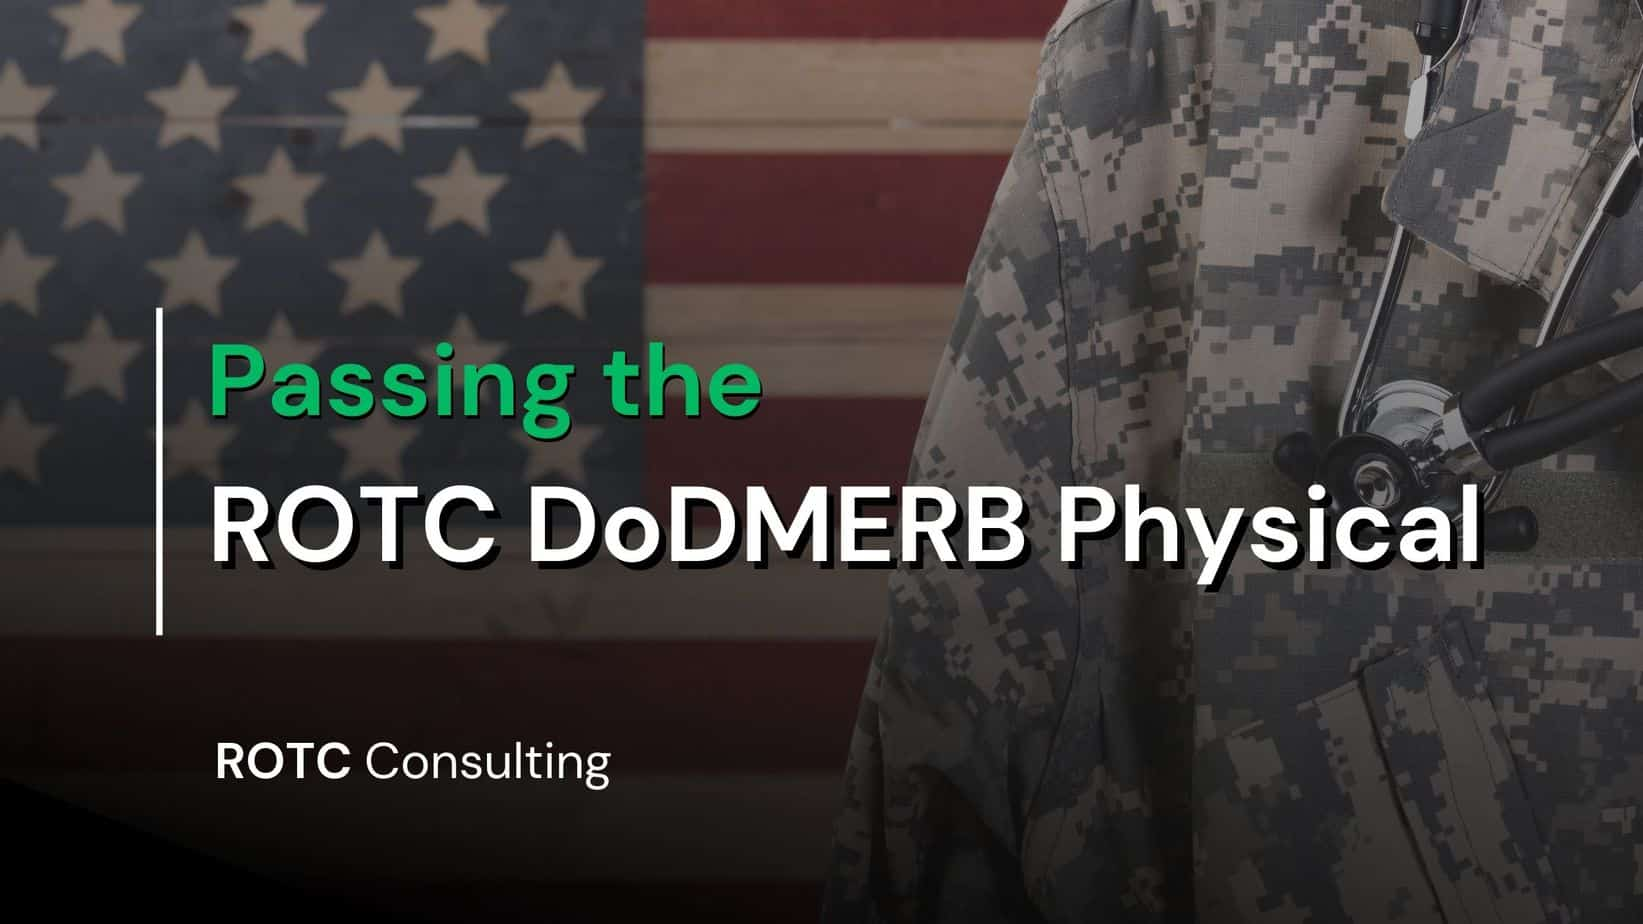 Passing the ROTC DODMERB Physical Blog Post Title Graphic